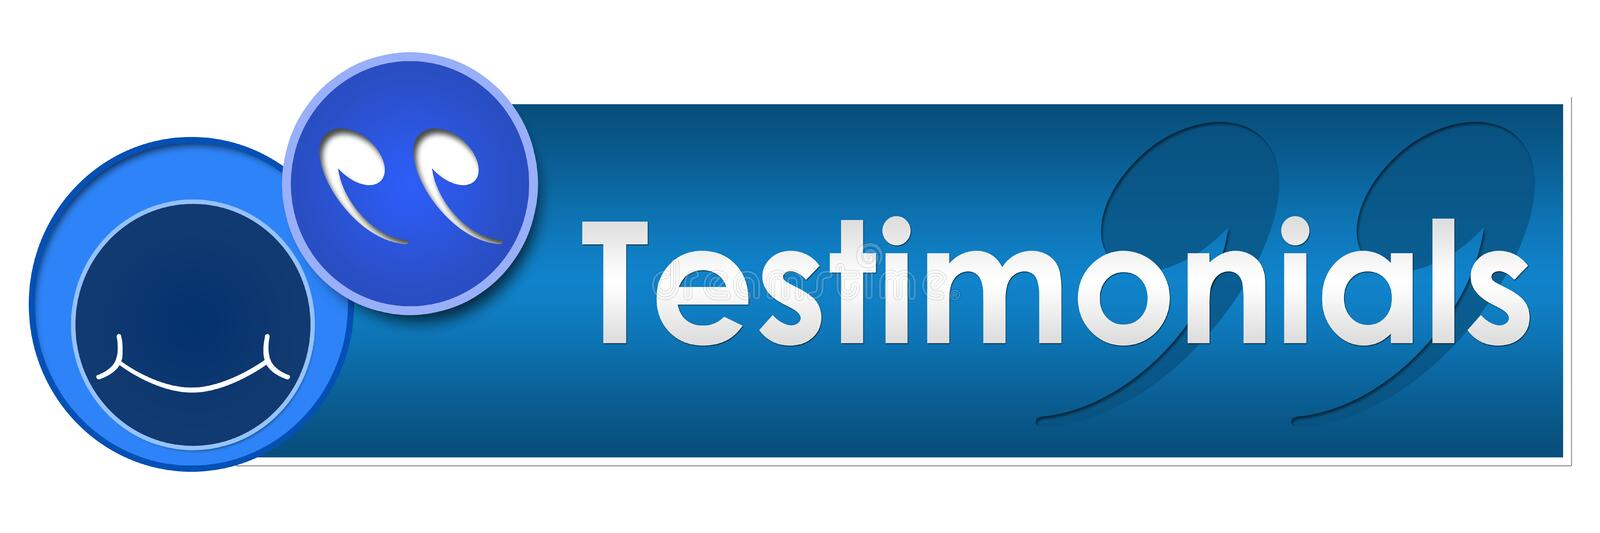 Testimonials Circles Square. A banner image for testimonials with smile and testimonials text royalty free illustration